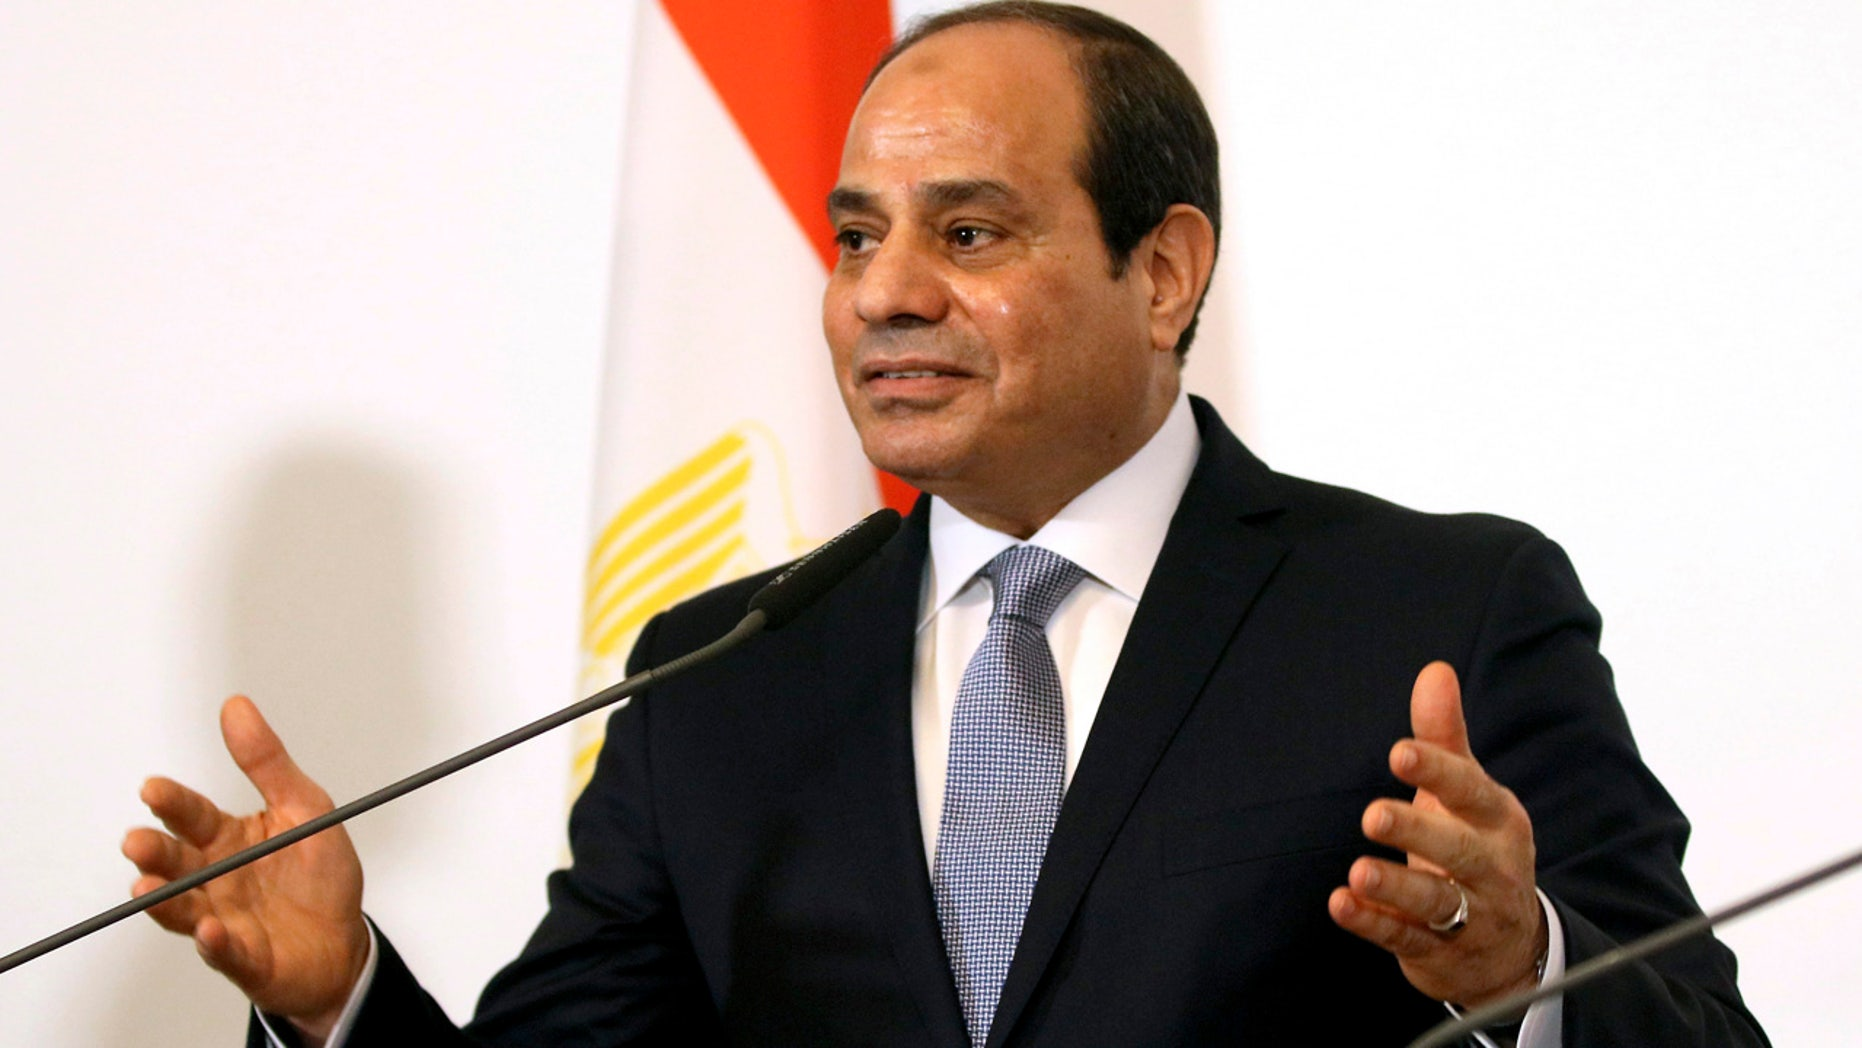 Egyptian President Abdel-Fattah el-Sissi, seen here in December 2018, denied his country held political prisoners. (AP Photo/Ronald Zak, File)